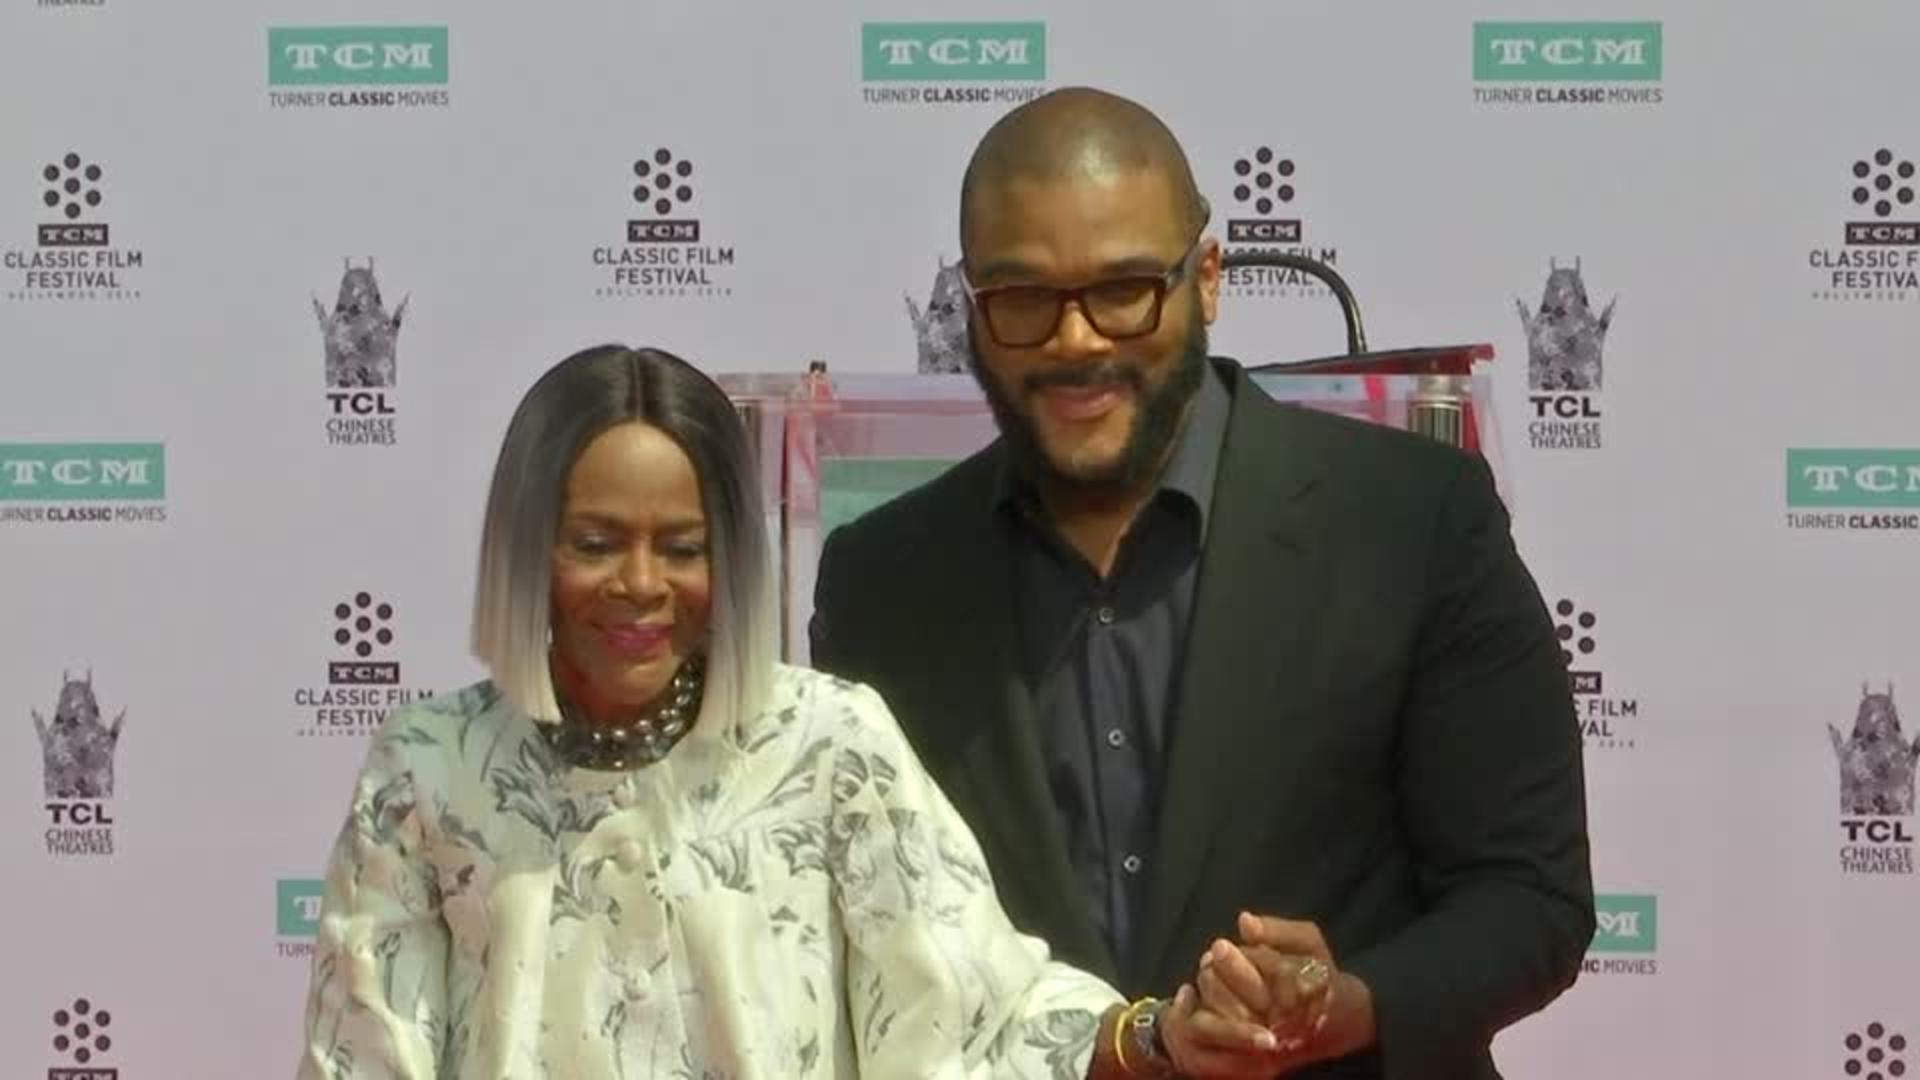 Cicely Tyson Becomes First Black Woman To Receive Honorary Oscar